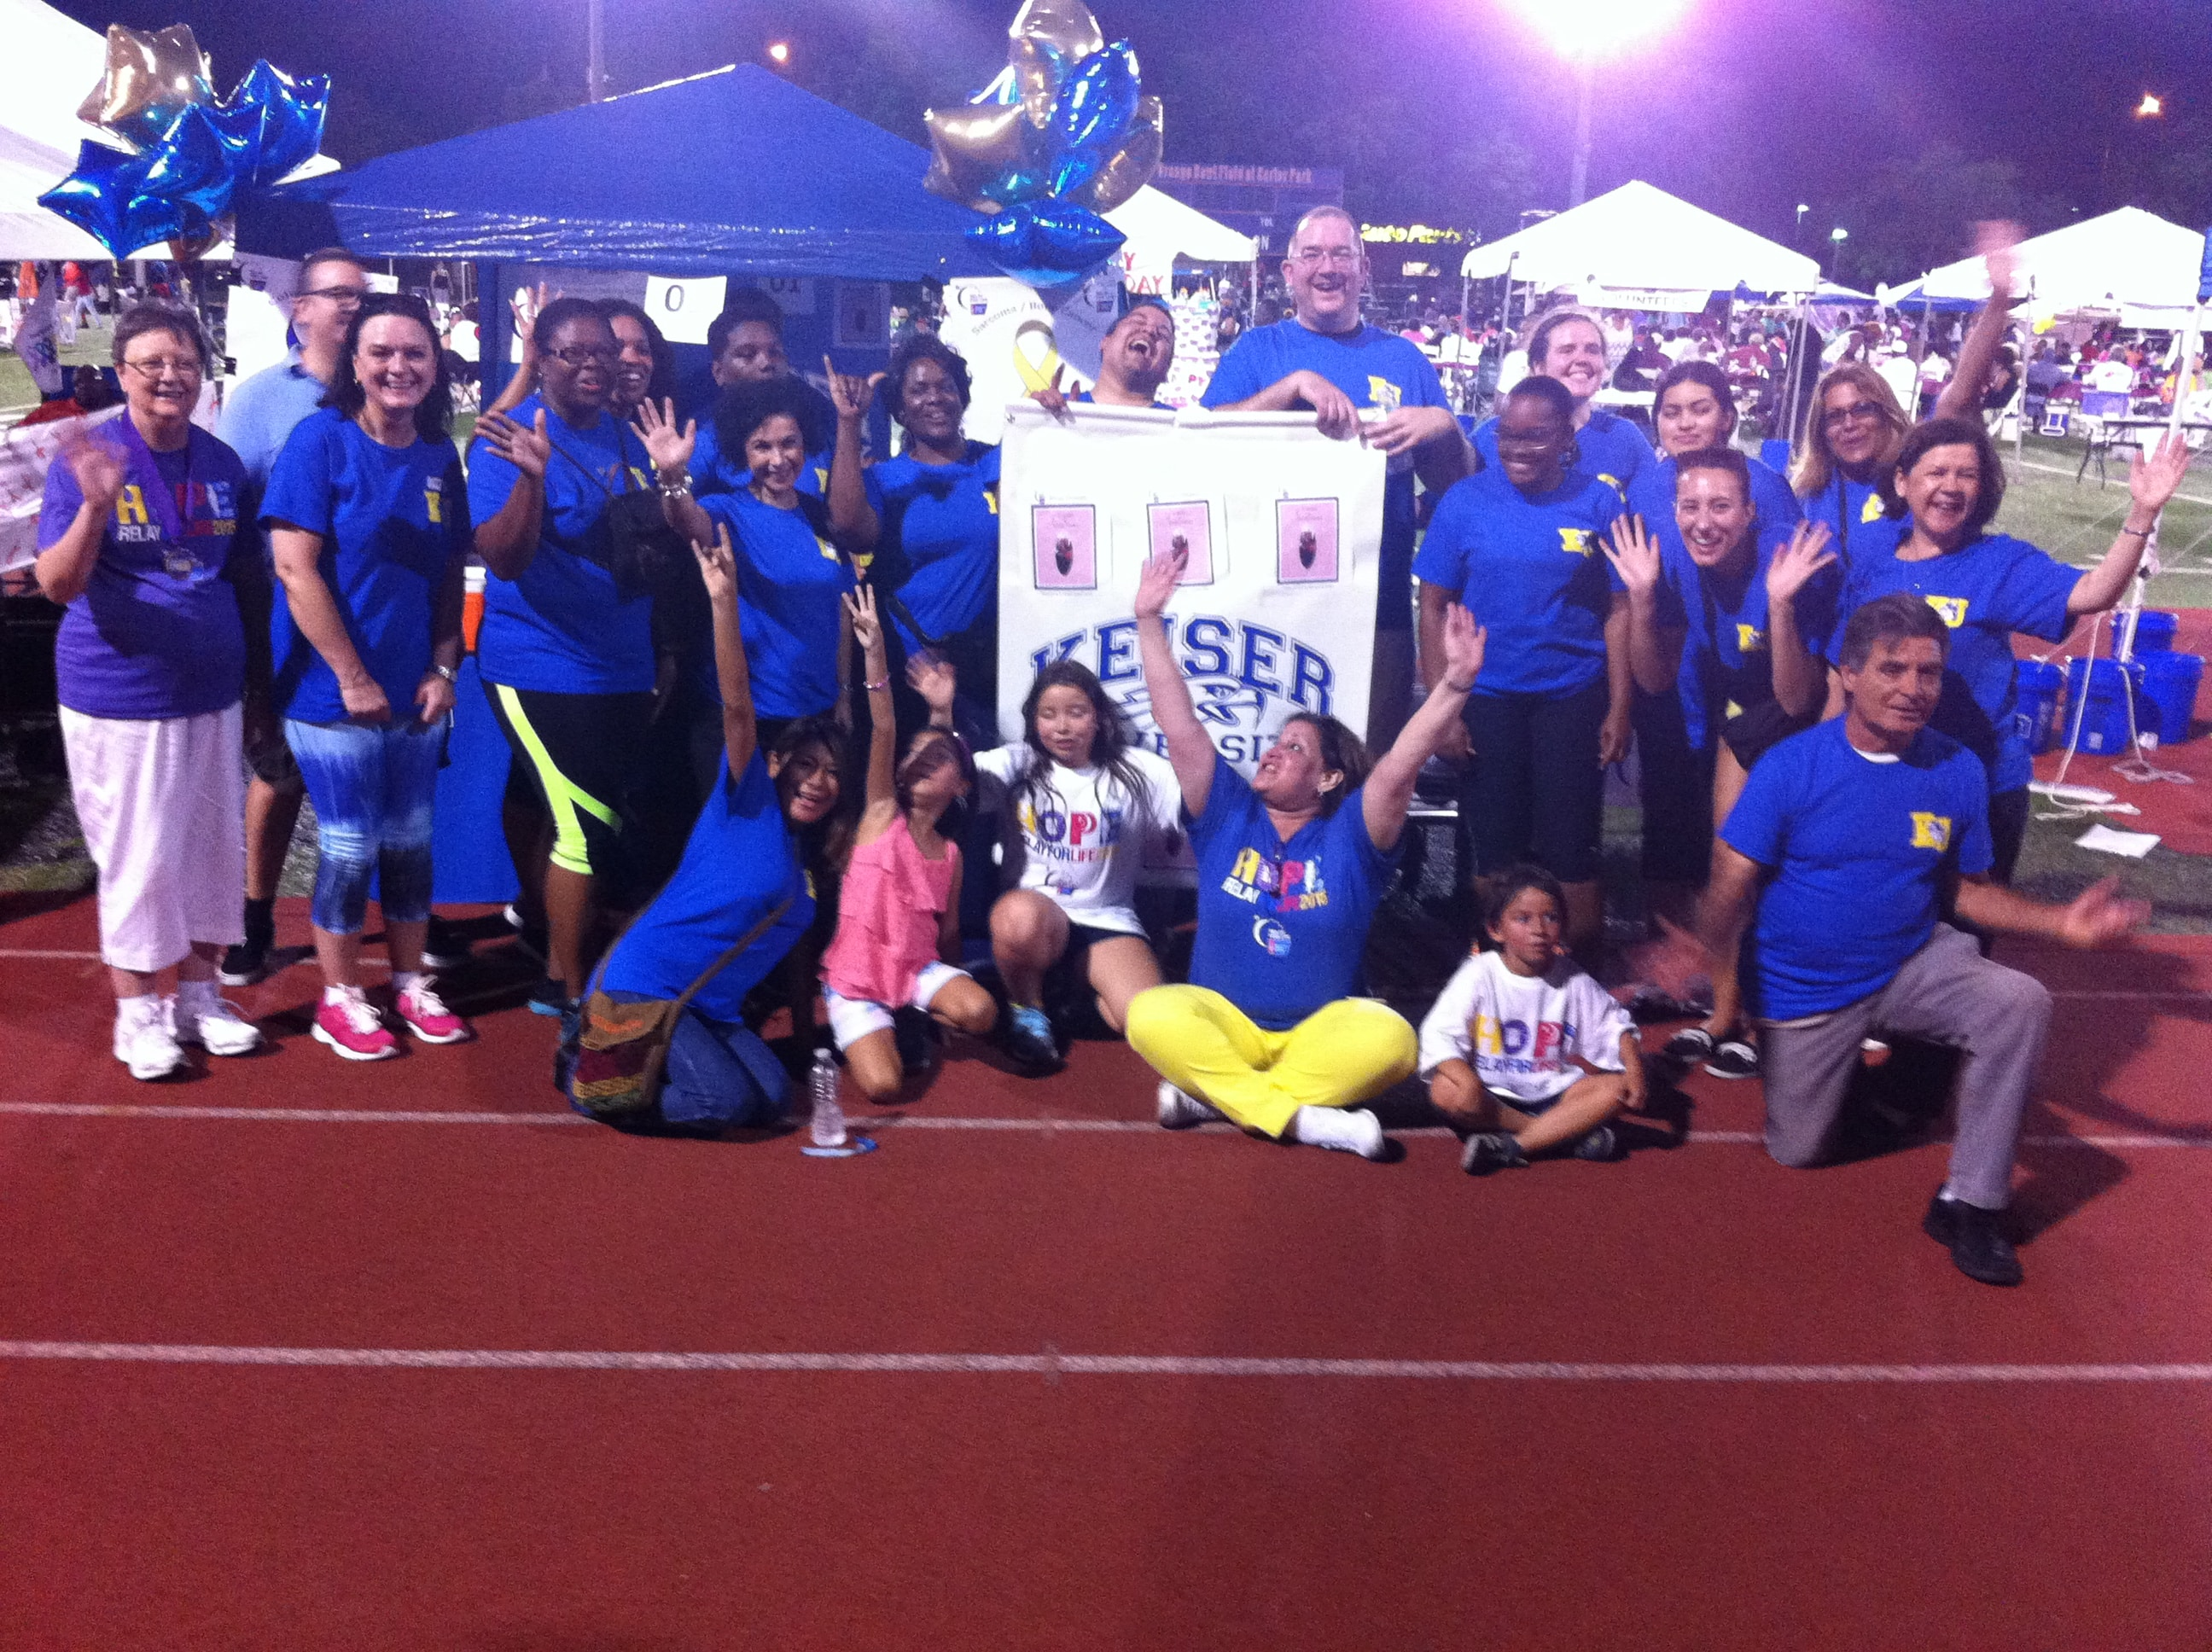 The Online Division Participates in Relay for Life in Memory of Dorothy Peterkin